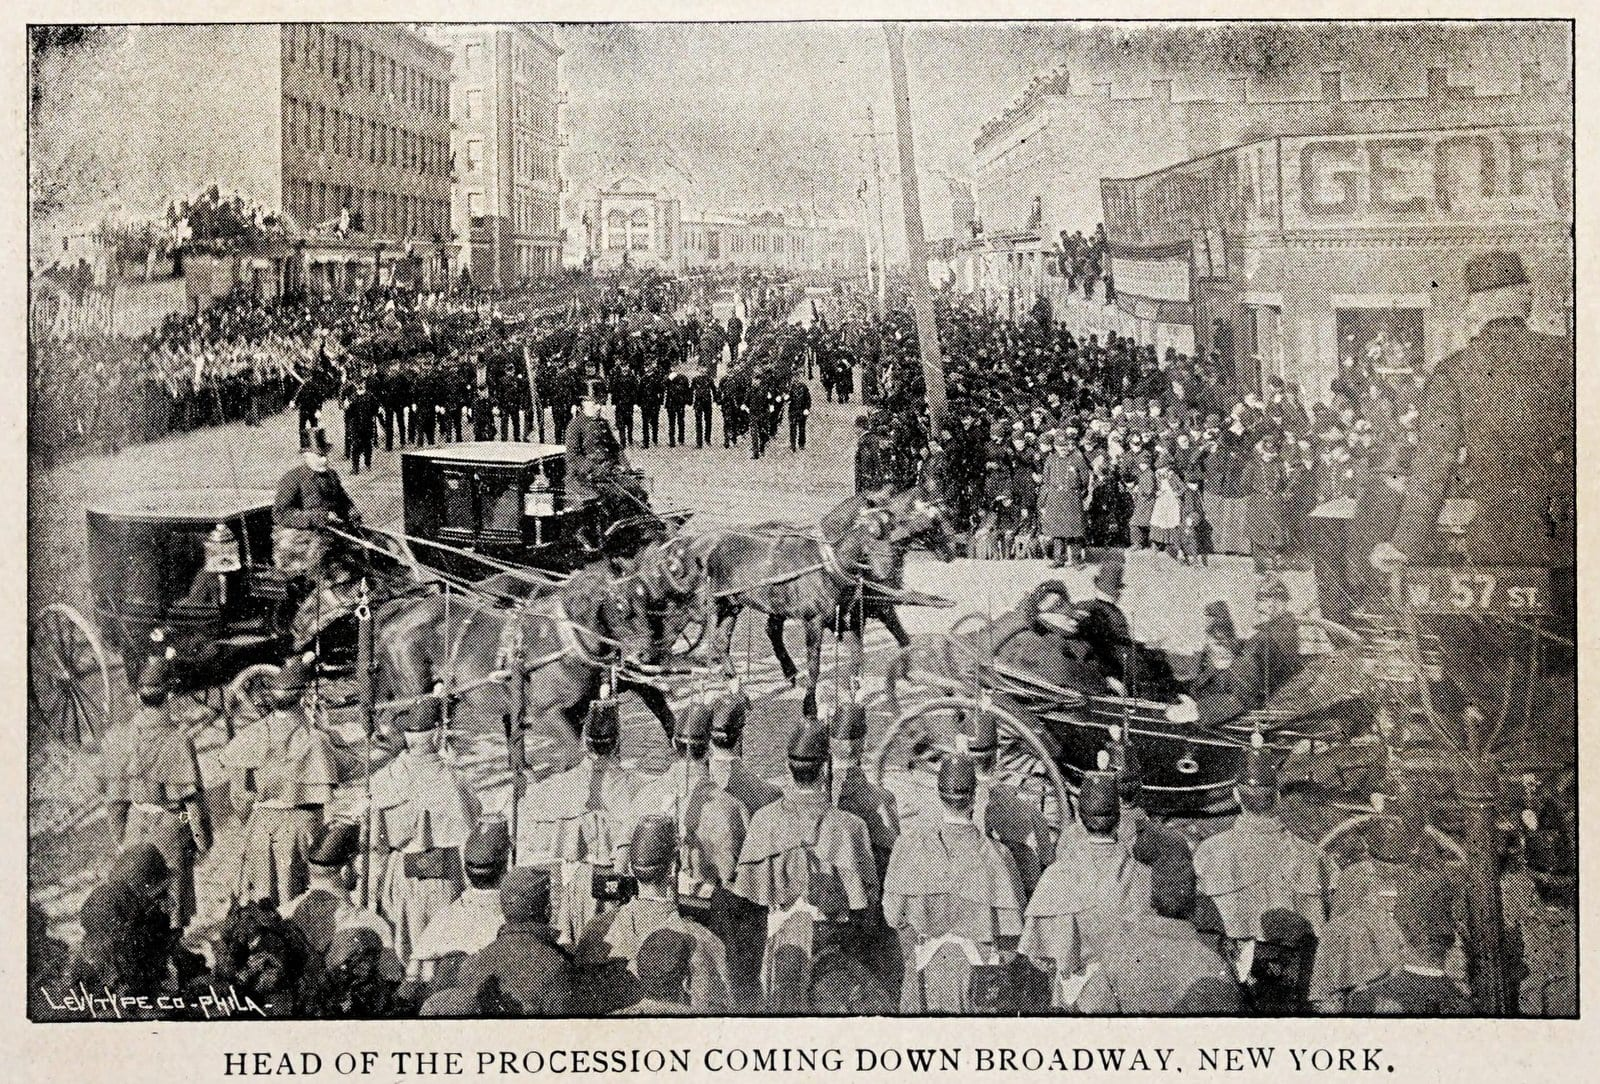 Head of the funeral procession for General William T Sherman, New York City, February 1891